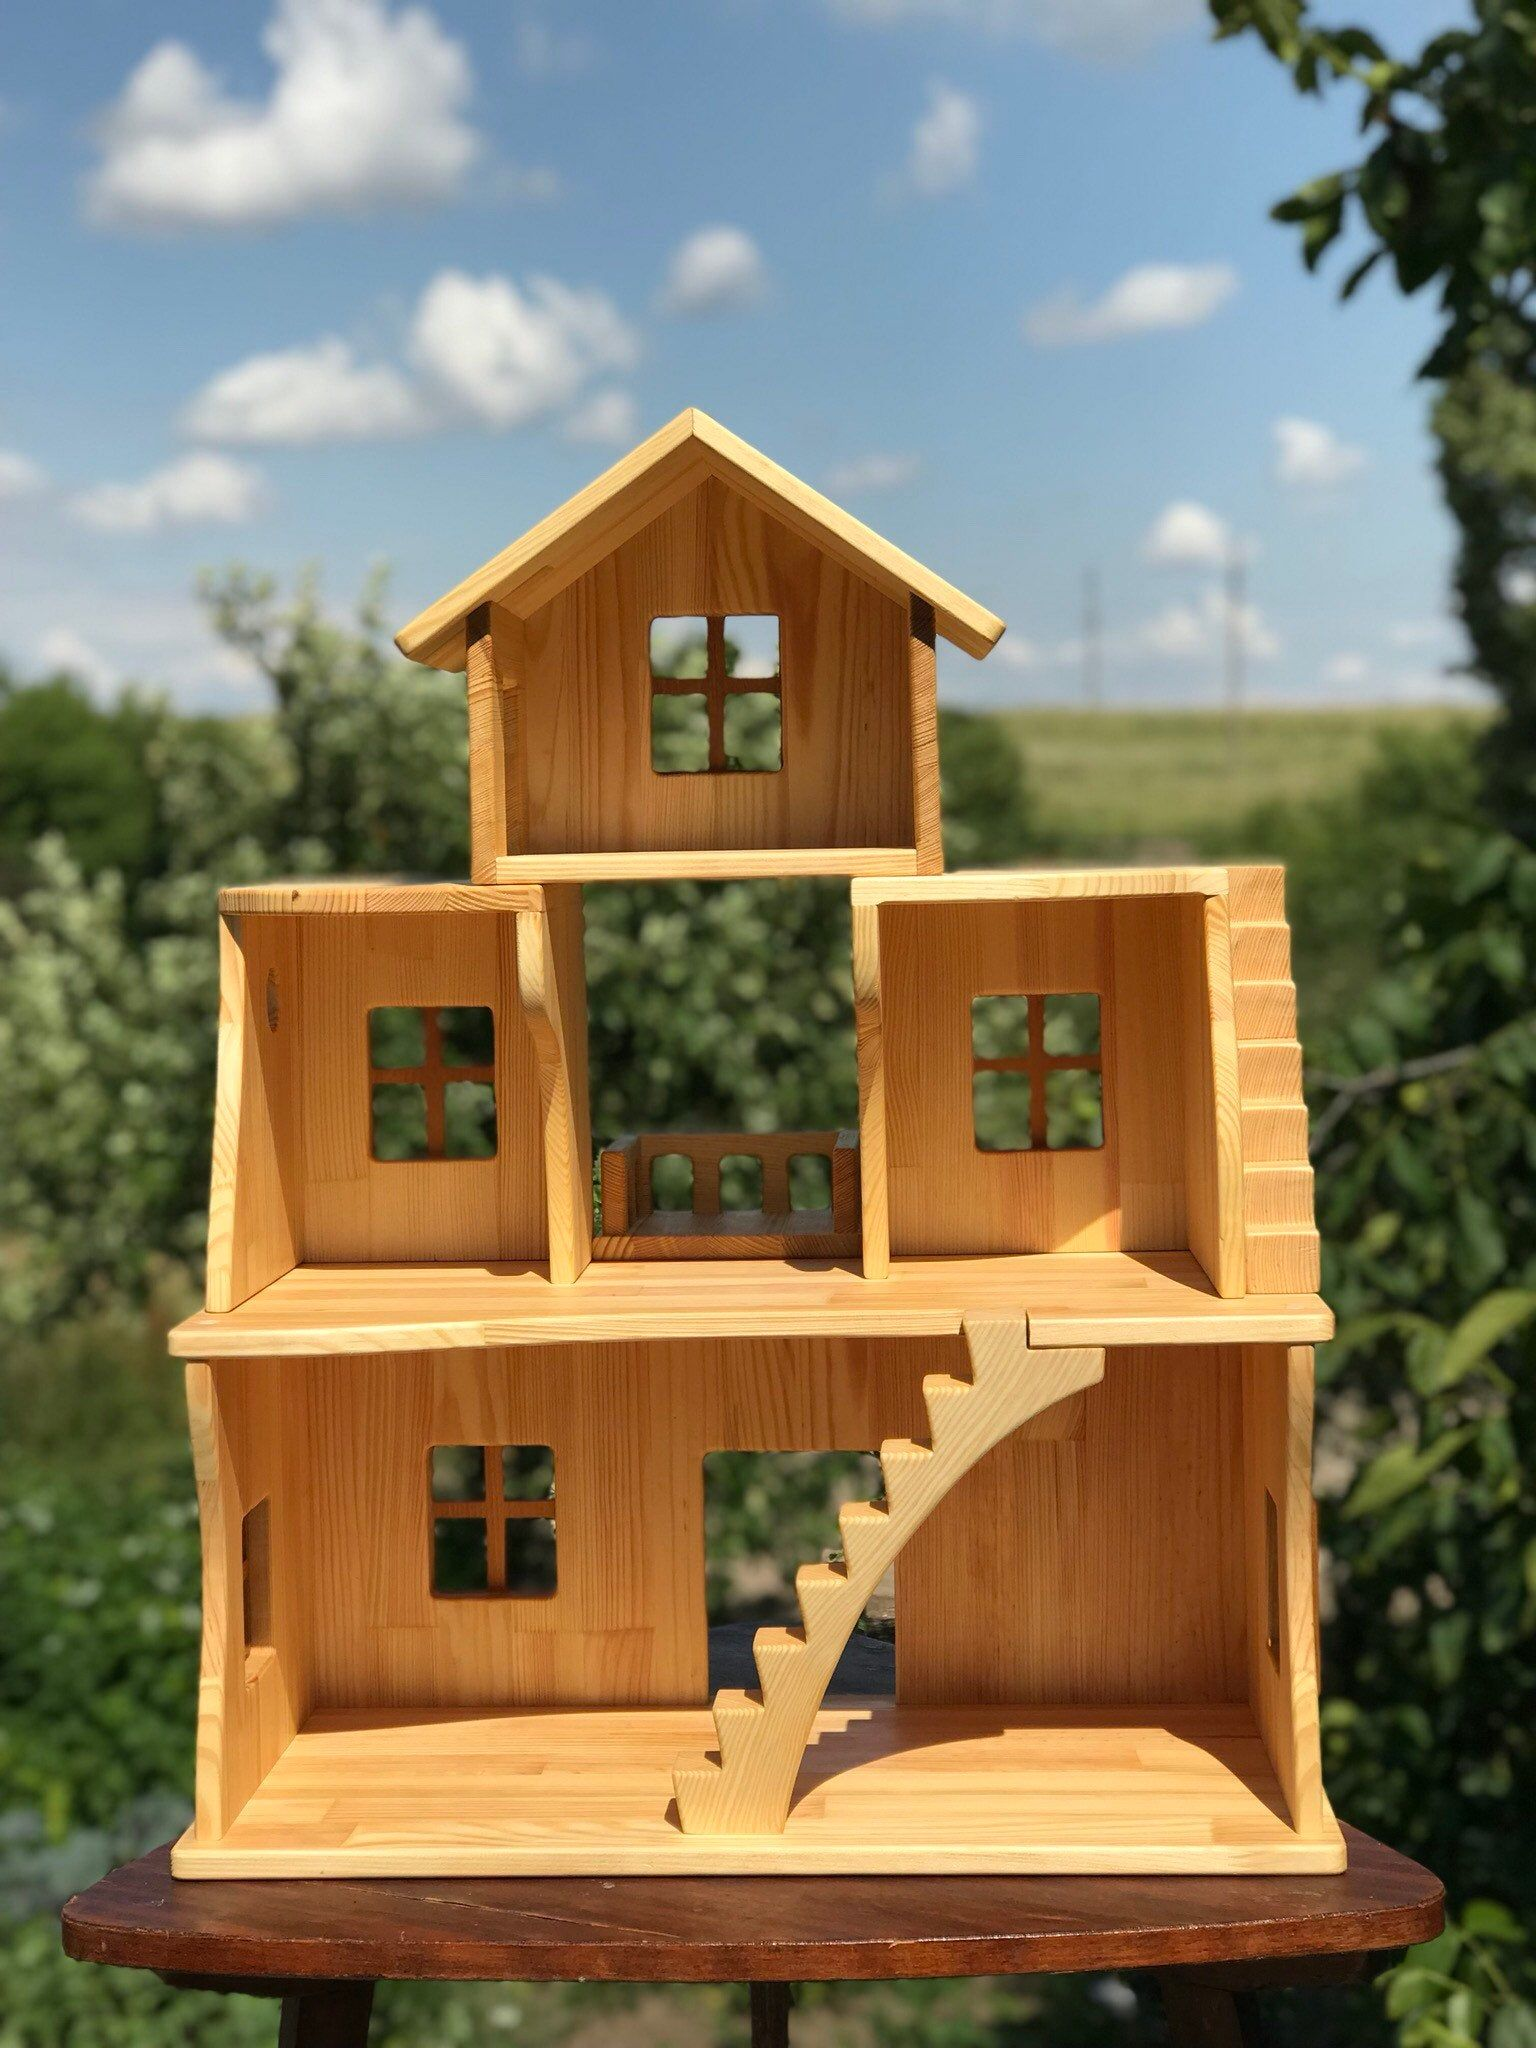 Wooden Dollhouse Stackable Three Story Dollhouse 1 16 Scale Etsy Wooden Dollhouse Dollhouse Furniture Doll House